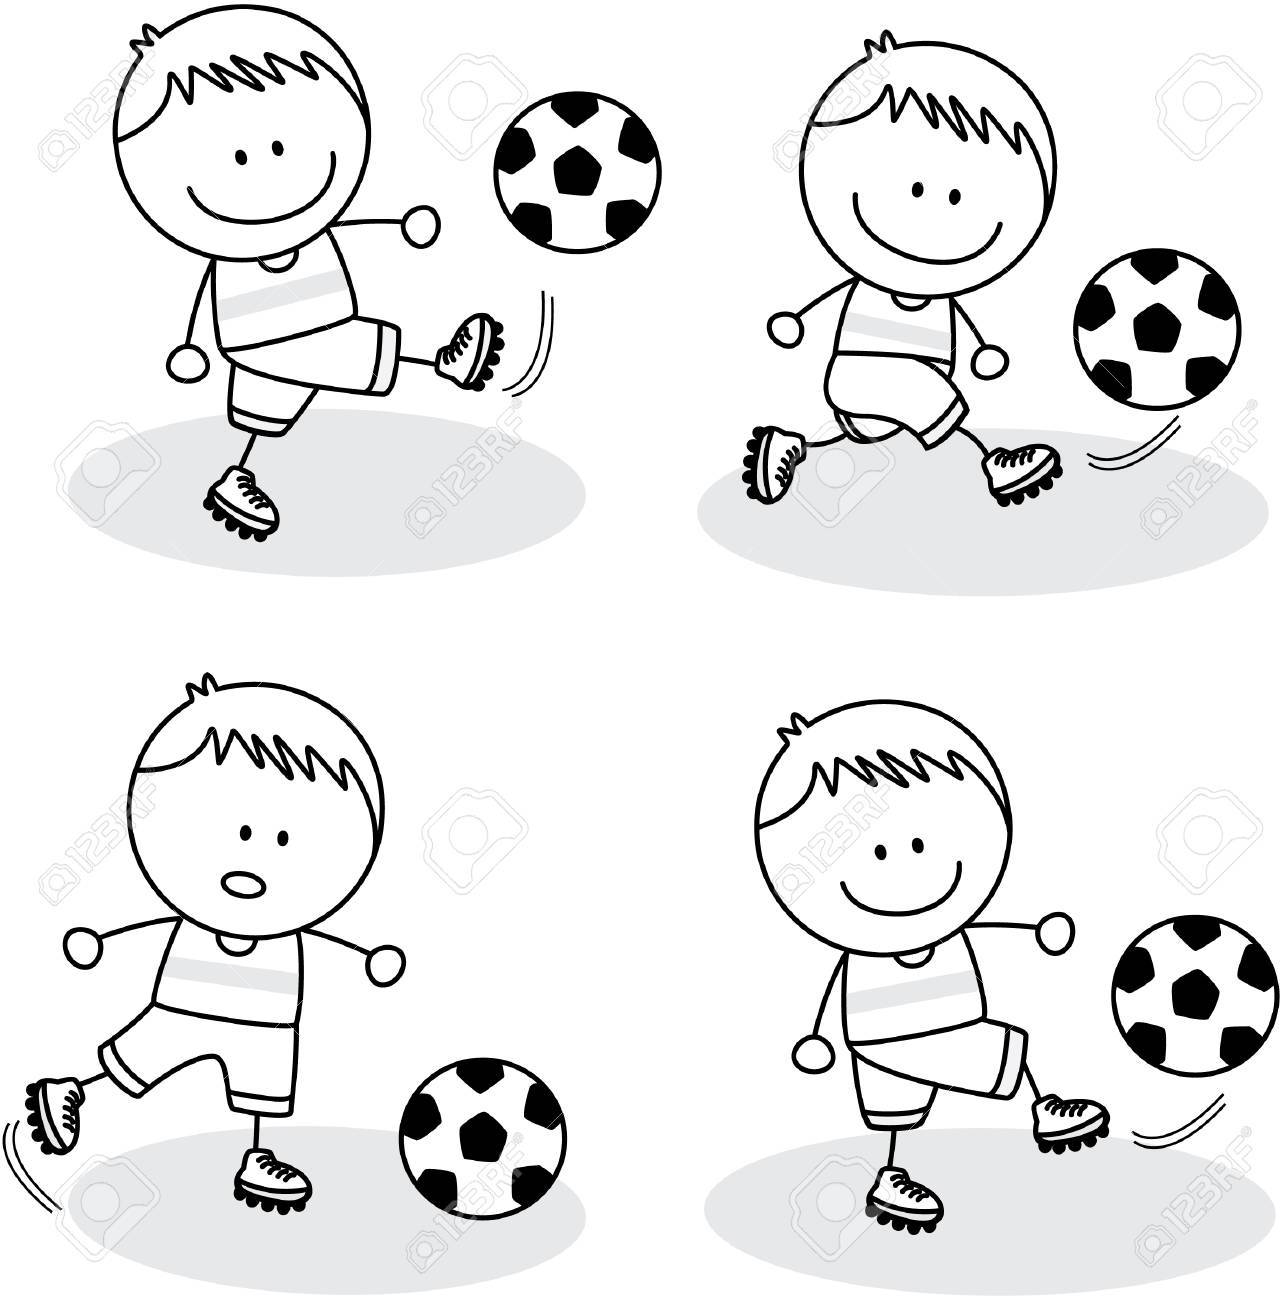 football kids playing at park royalty free cliparts, vectors, and